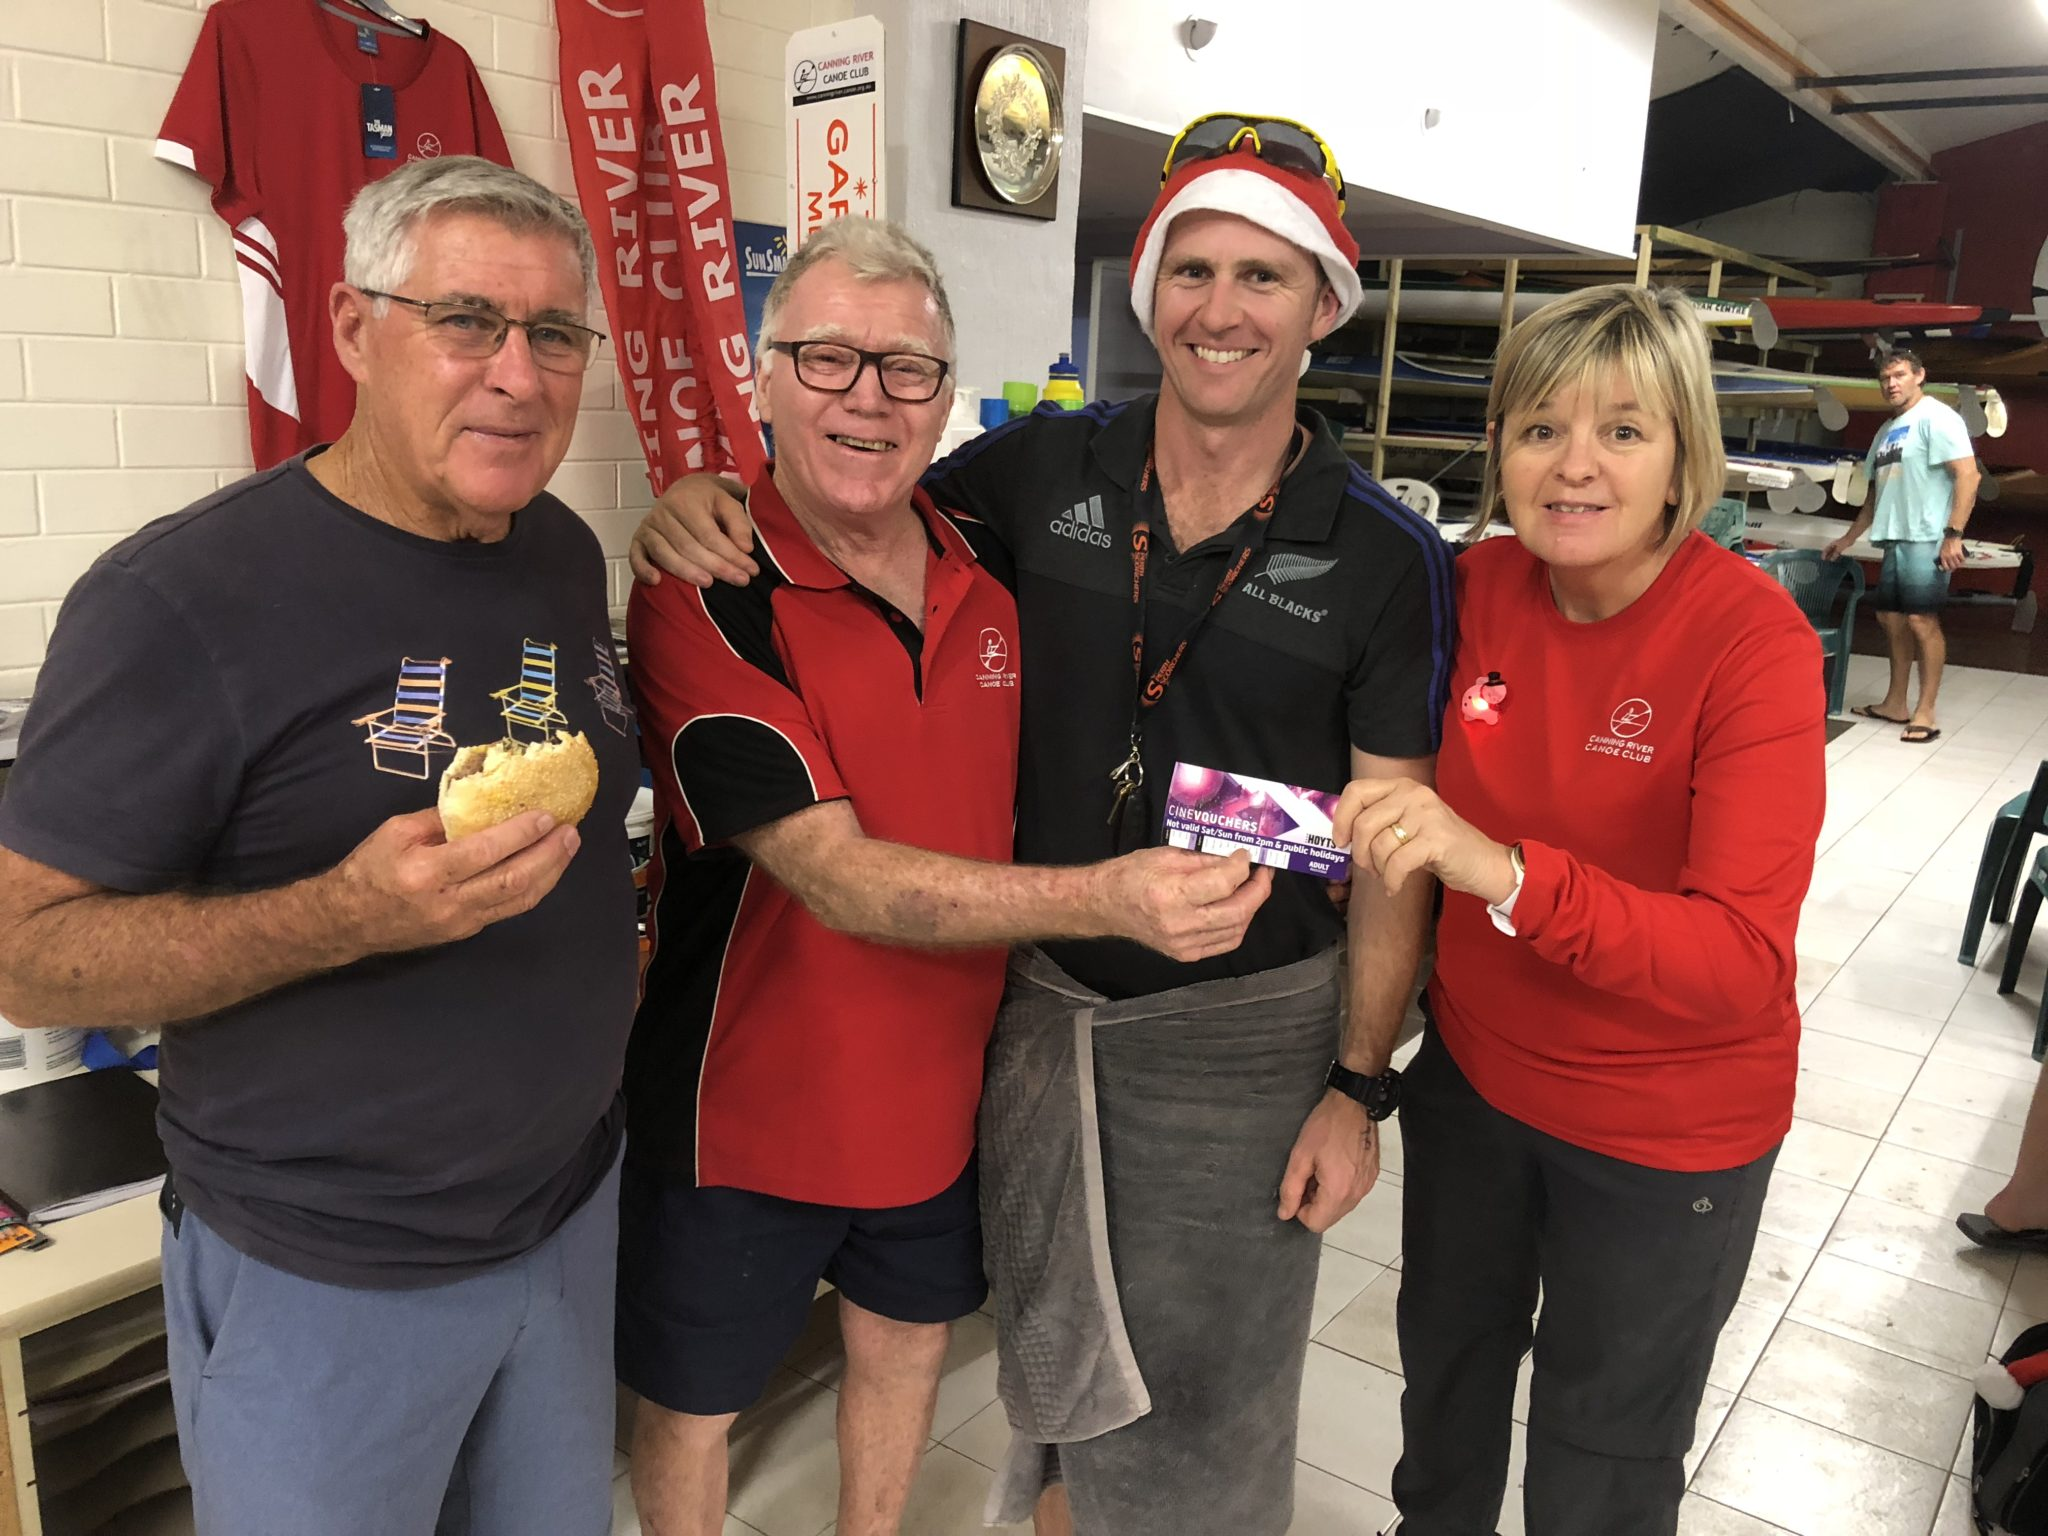 Tues 18th December 2018 : Tonight's photo shows club member Judith Thompson presenting David Gardiner, Joe Wilson and Mike Laloli with a movie voucher.